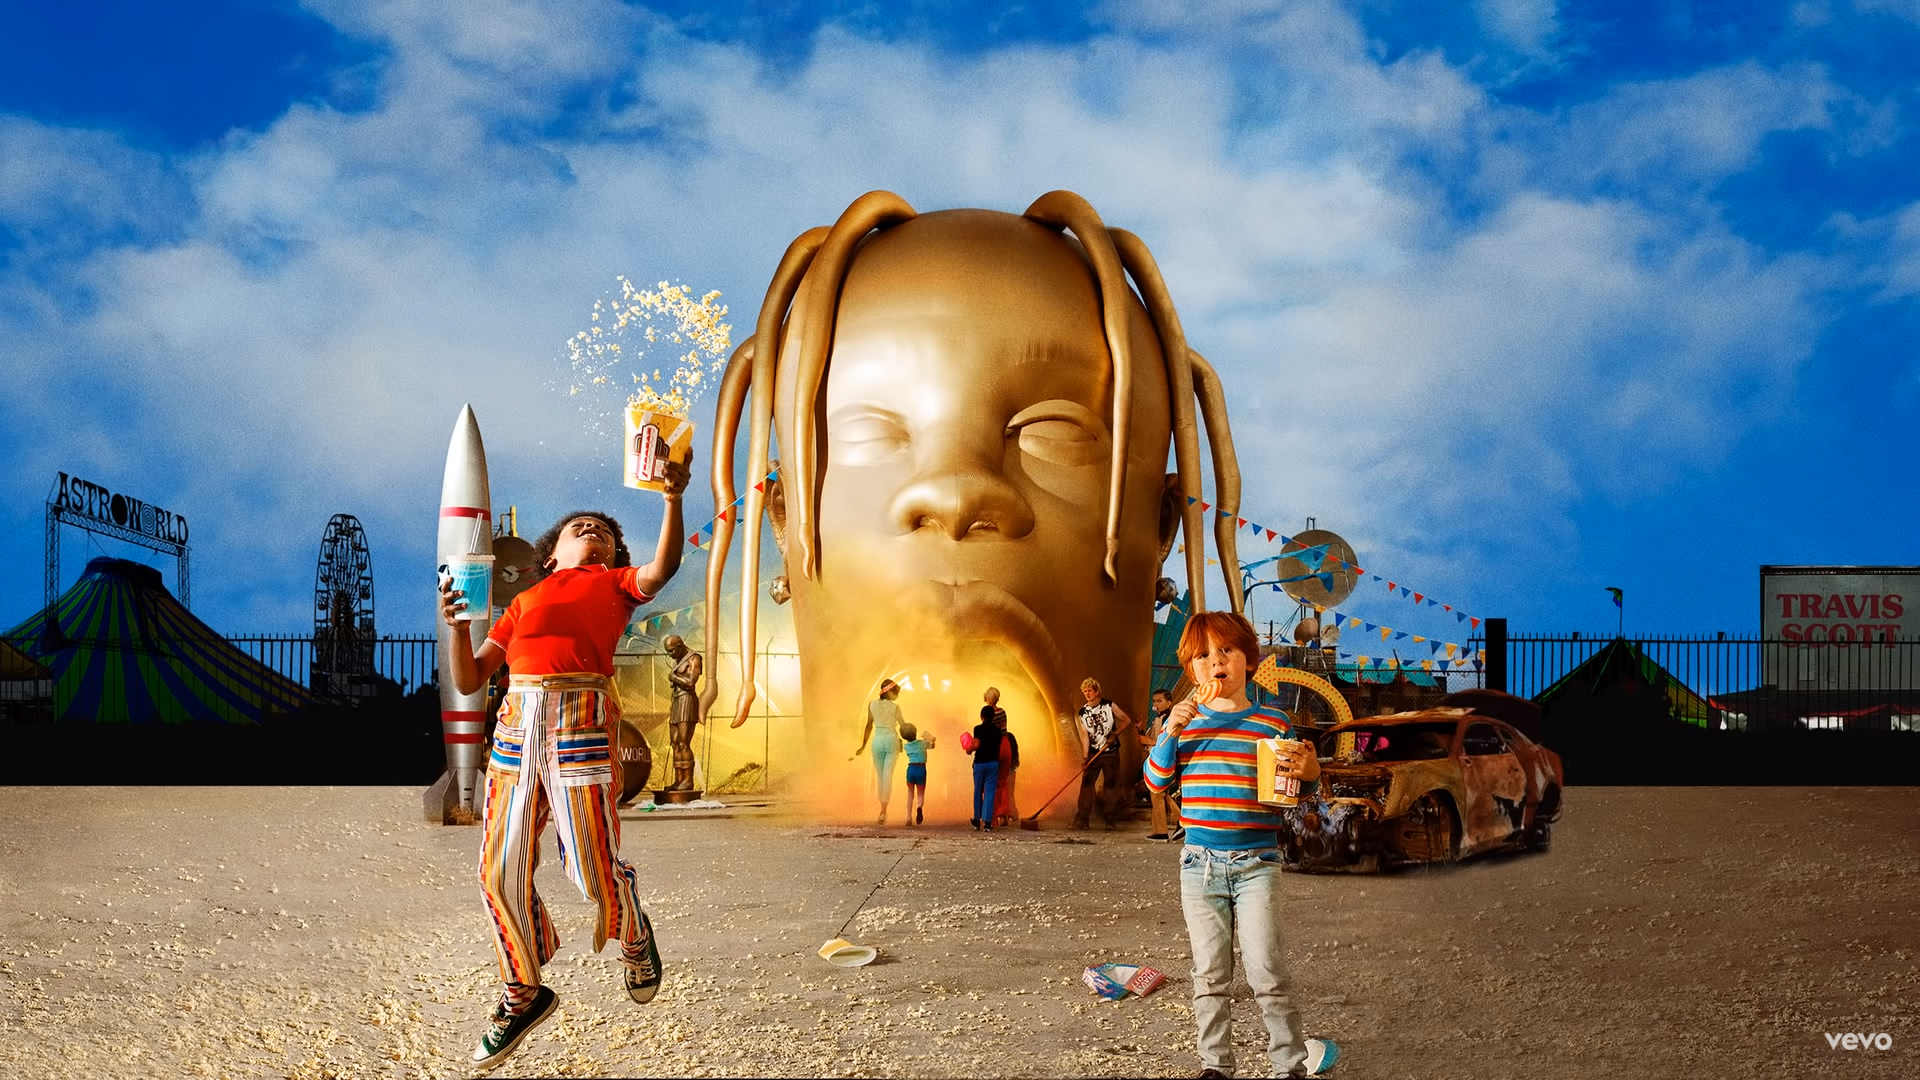 Latoraro In 2020 Travis Scott Wallpapers Edgy Wallpaper Hypebeast Wallpaper